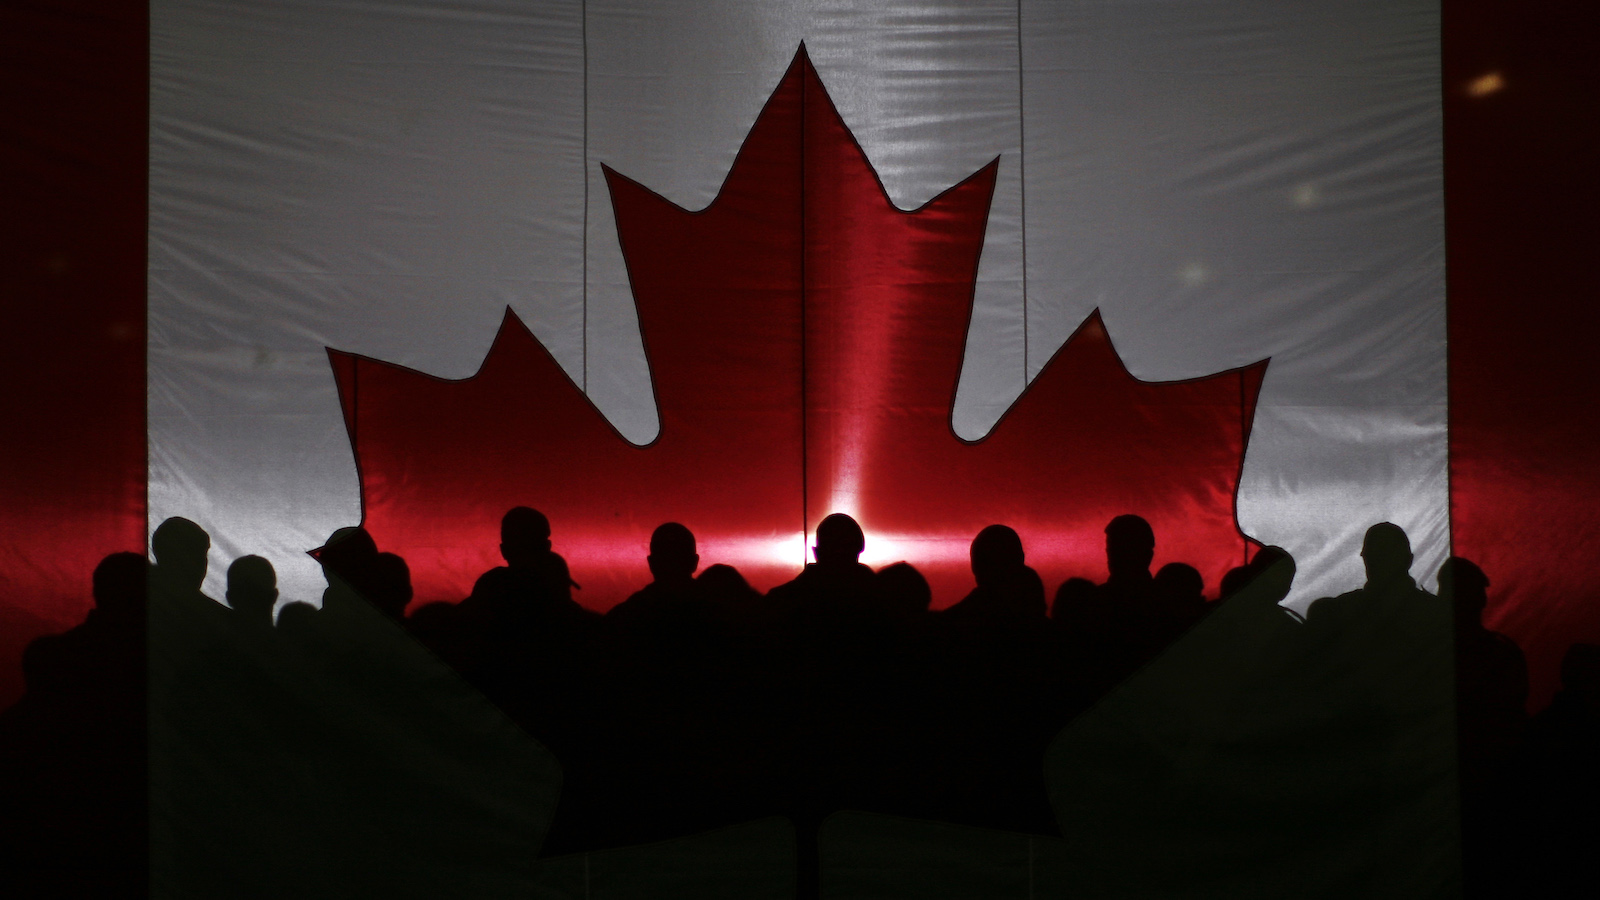 Members of the military and emergency personnel are silhouetted through a Canadian flag while waiting for the start of an event with Canadian Prime Minister Stephen Harper (not pictured) in Resolute Bay, Nunavut August 23, 2011.  REUTERS/Chris Wattie (CANADA - Tags: POLITICS IMAGES OF THE DAY) - RTR2Q8UZ